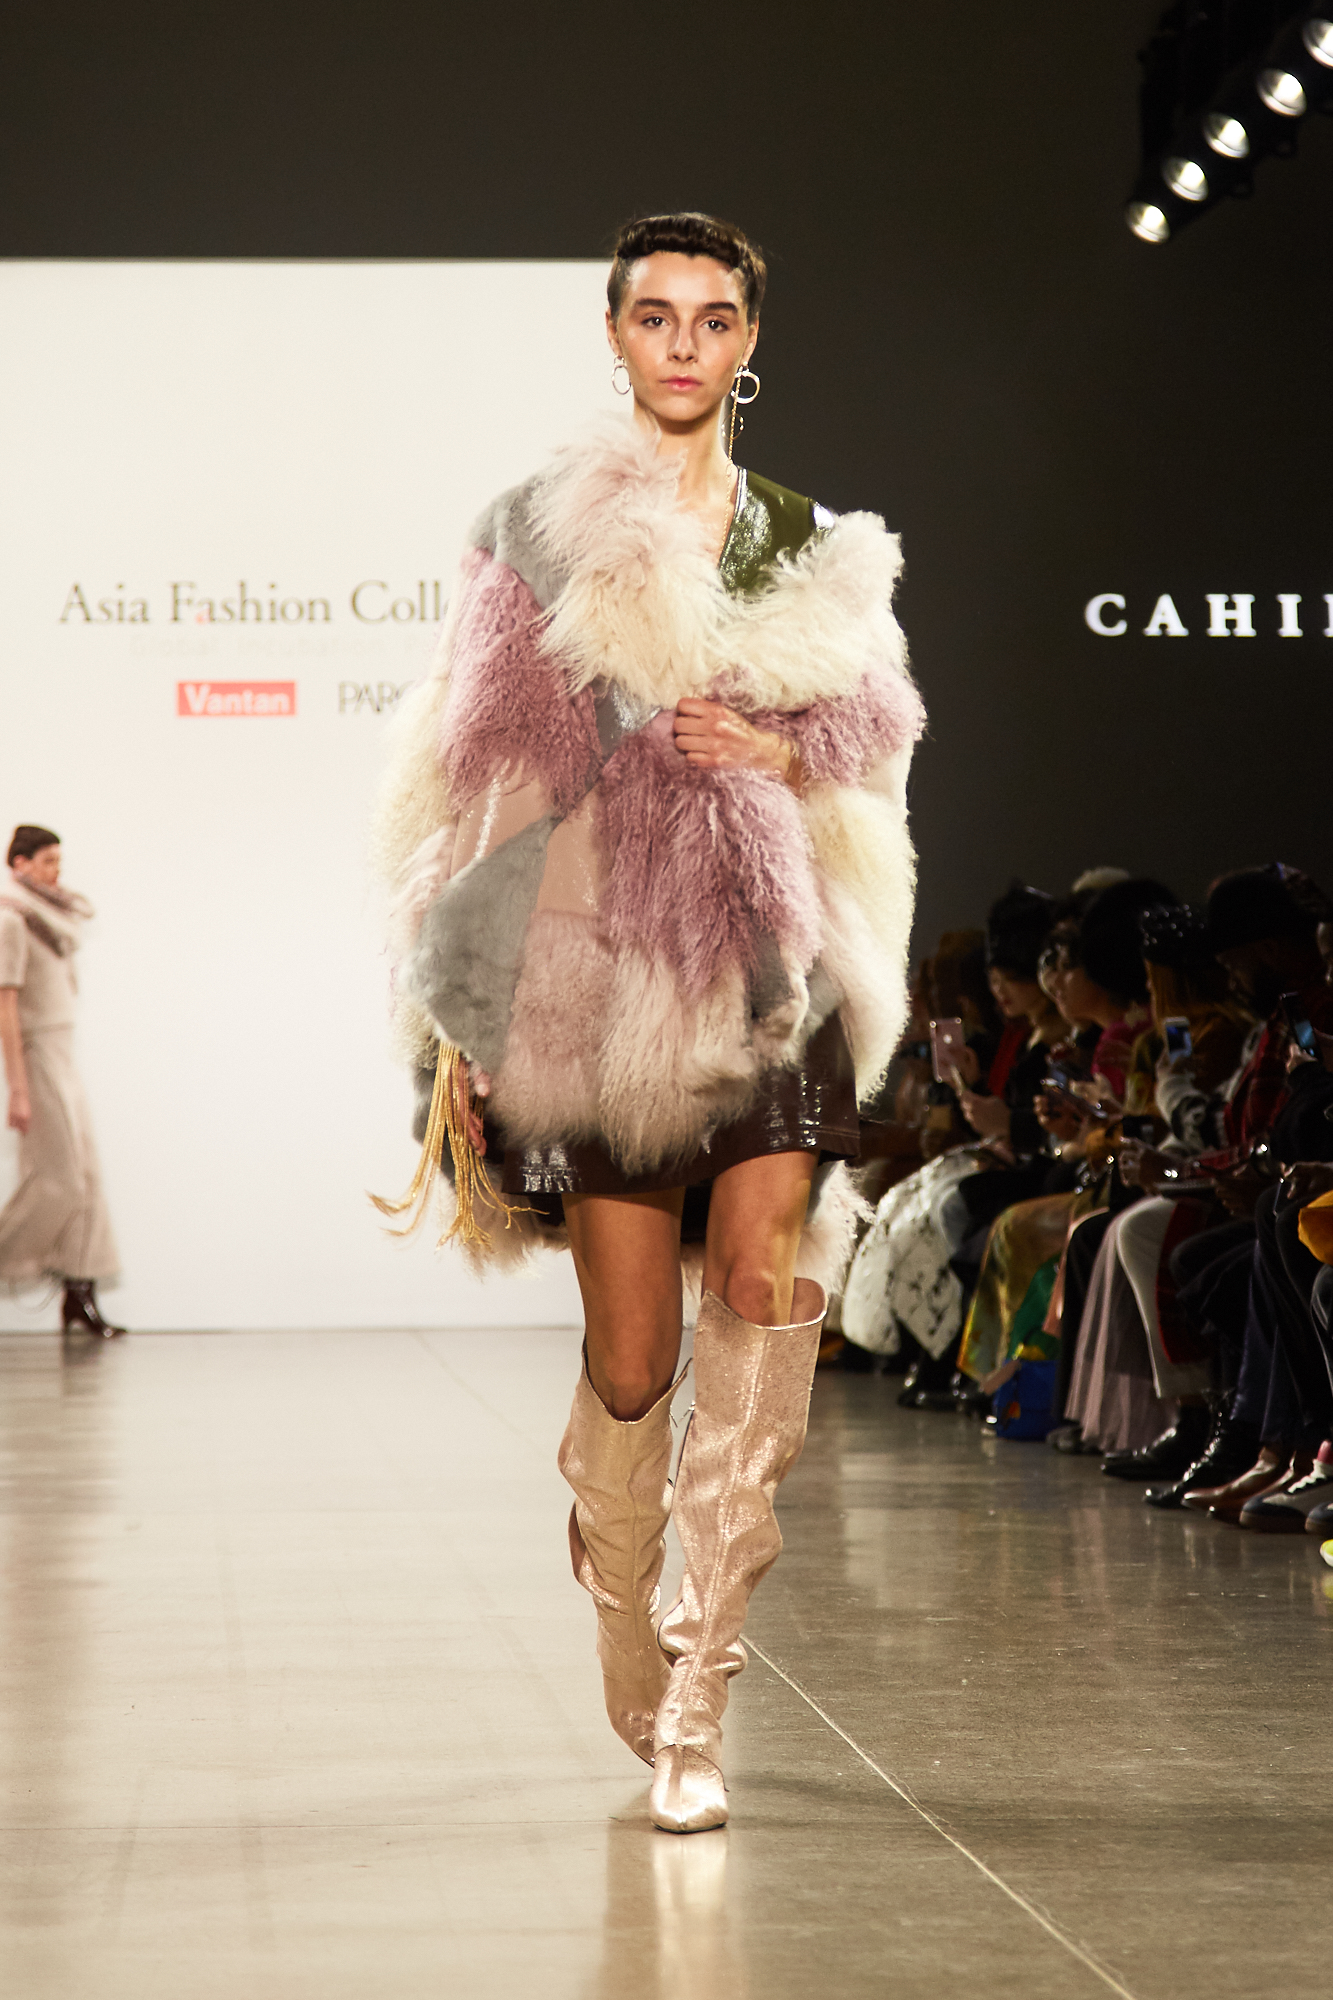 Asia Fashion Collection